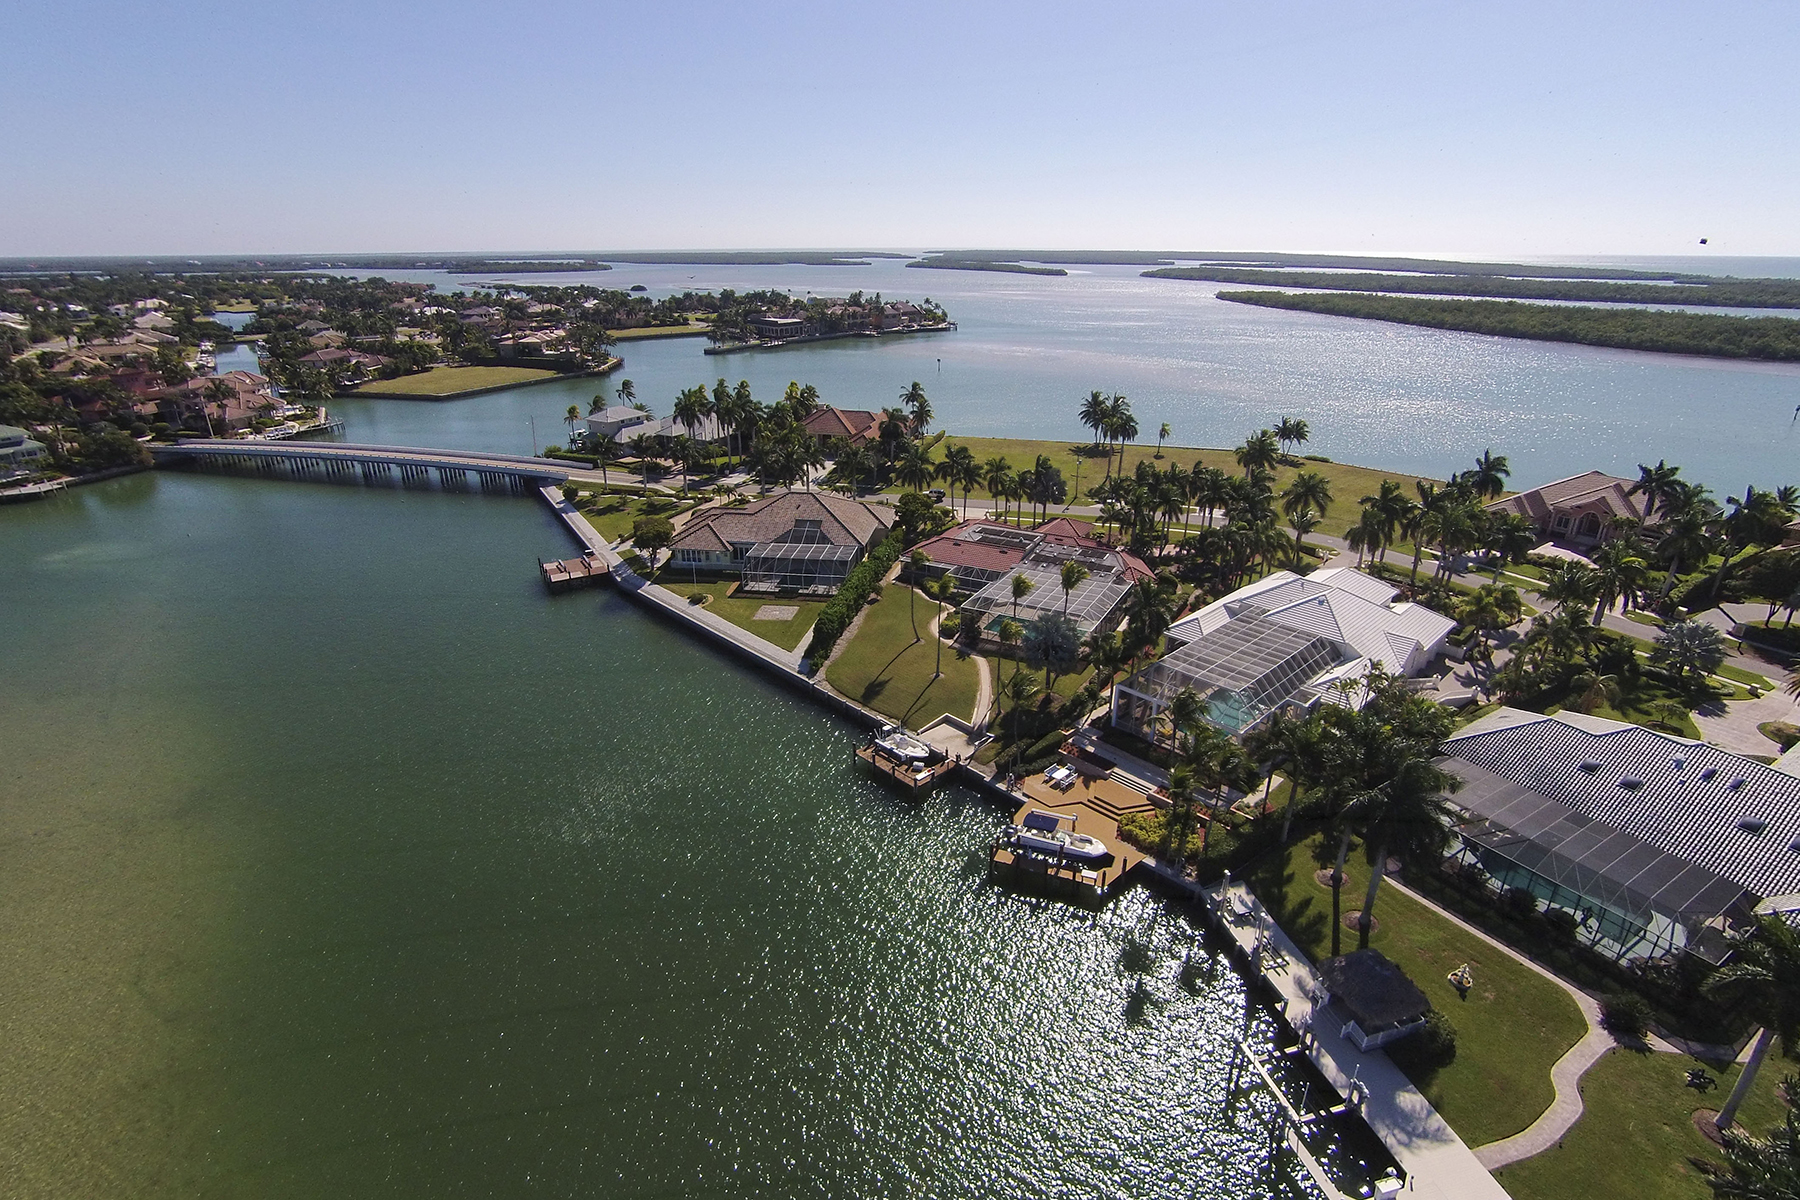 Single Family Home for Sale at MARCO ISLAND - CAXAMBAS COURT 1470 Caxambas Ct Marco Island, Florida, 34145 United States